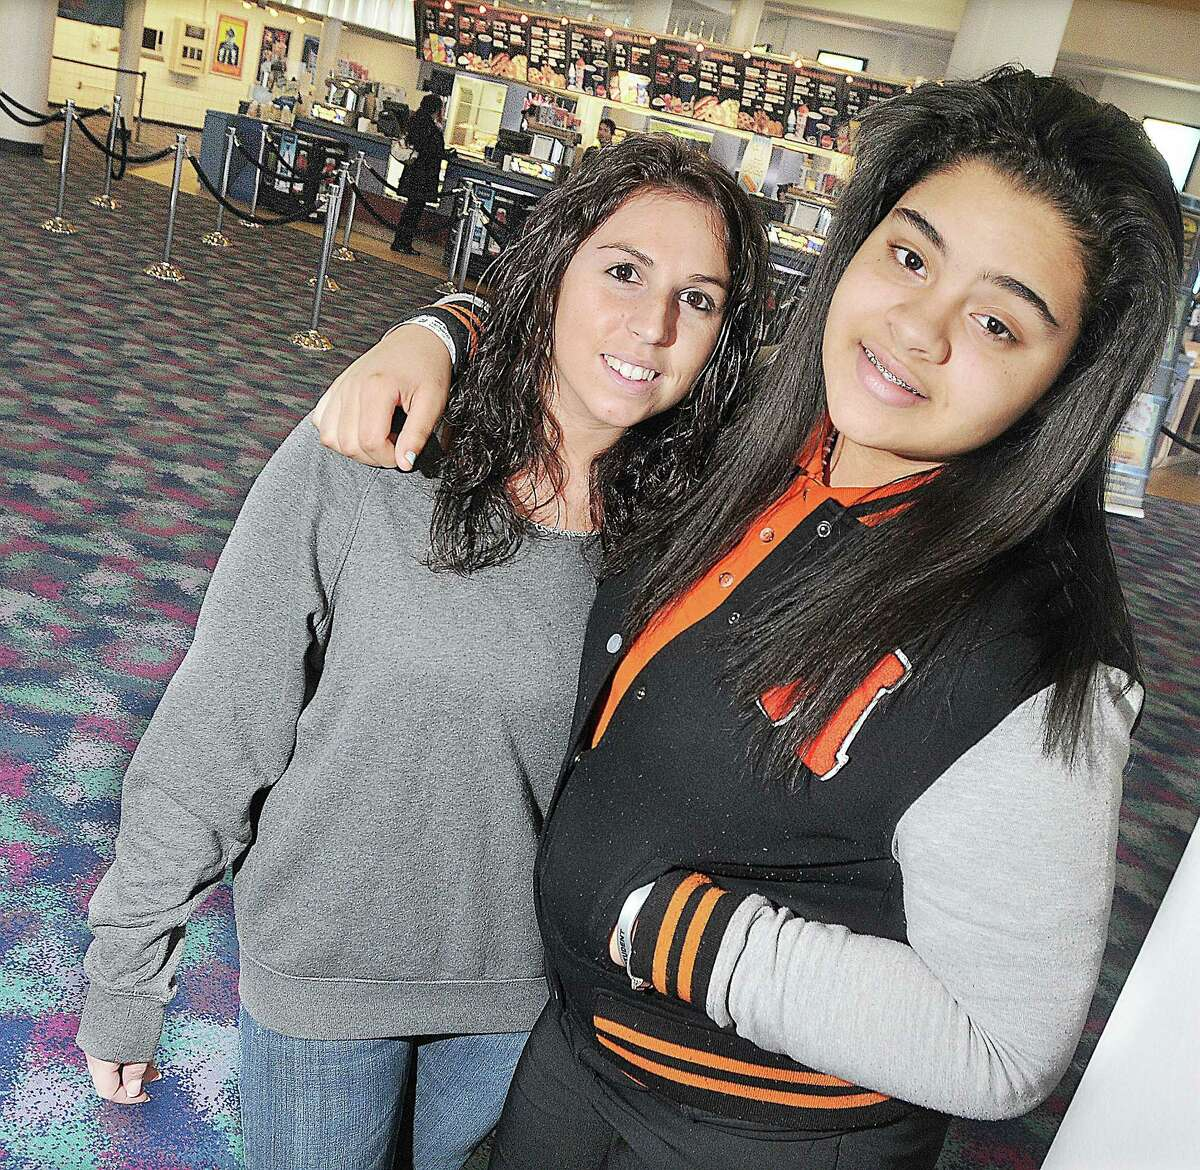 CATHERINE AVALONE — THE MIDDLETOWN PRESS FILE PHOTO Cromwell resident Jenna Director, then 22, at left, and her Little Sister Jaiyah Kimber, then 14, at Rave Cinemas in Berlin in this file photo from 2013.